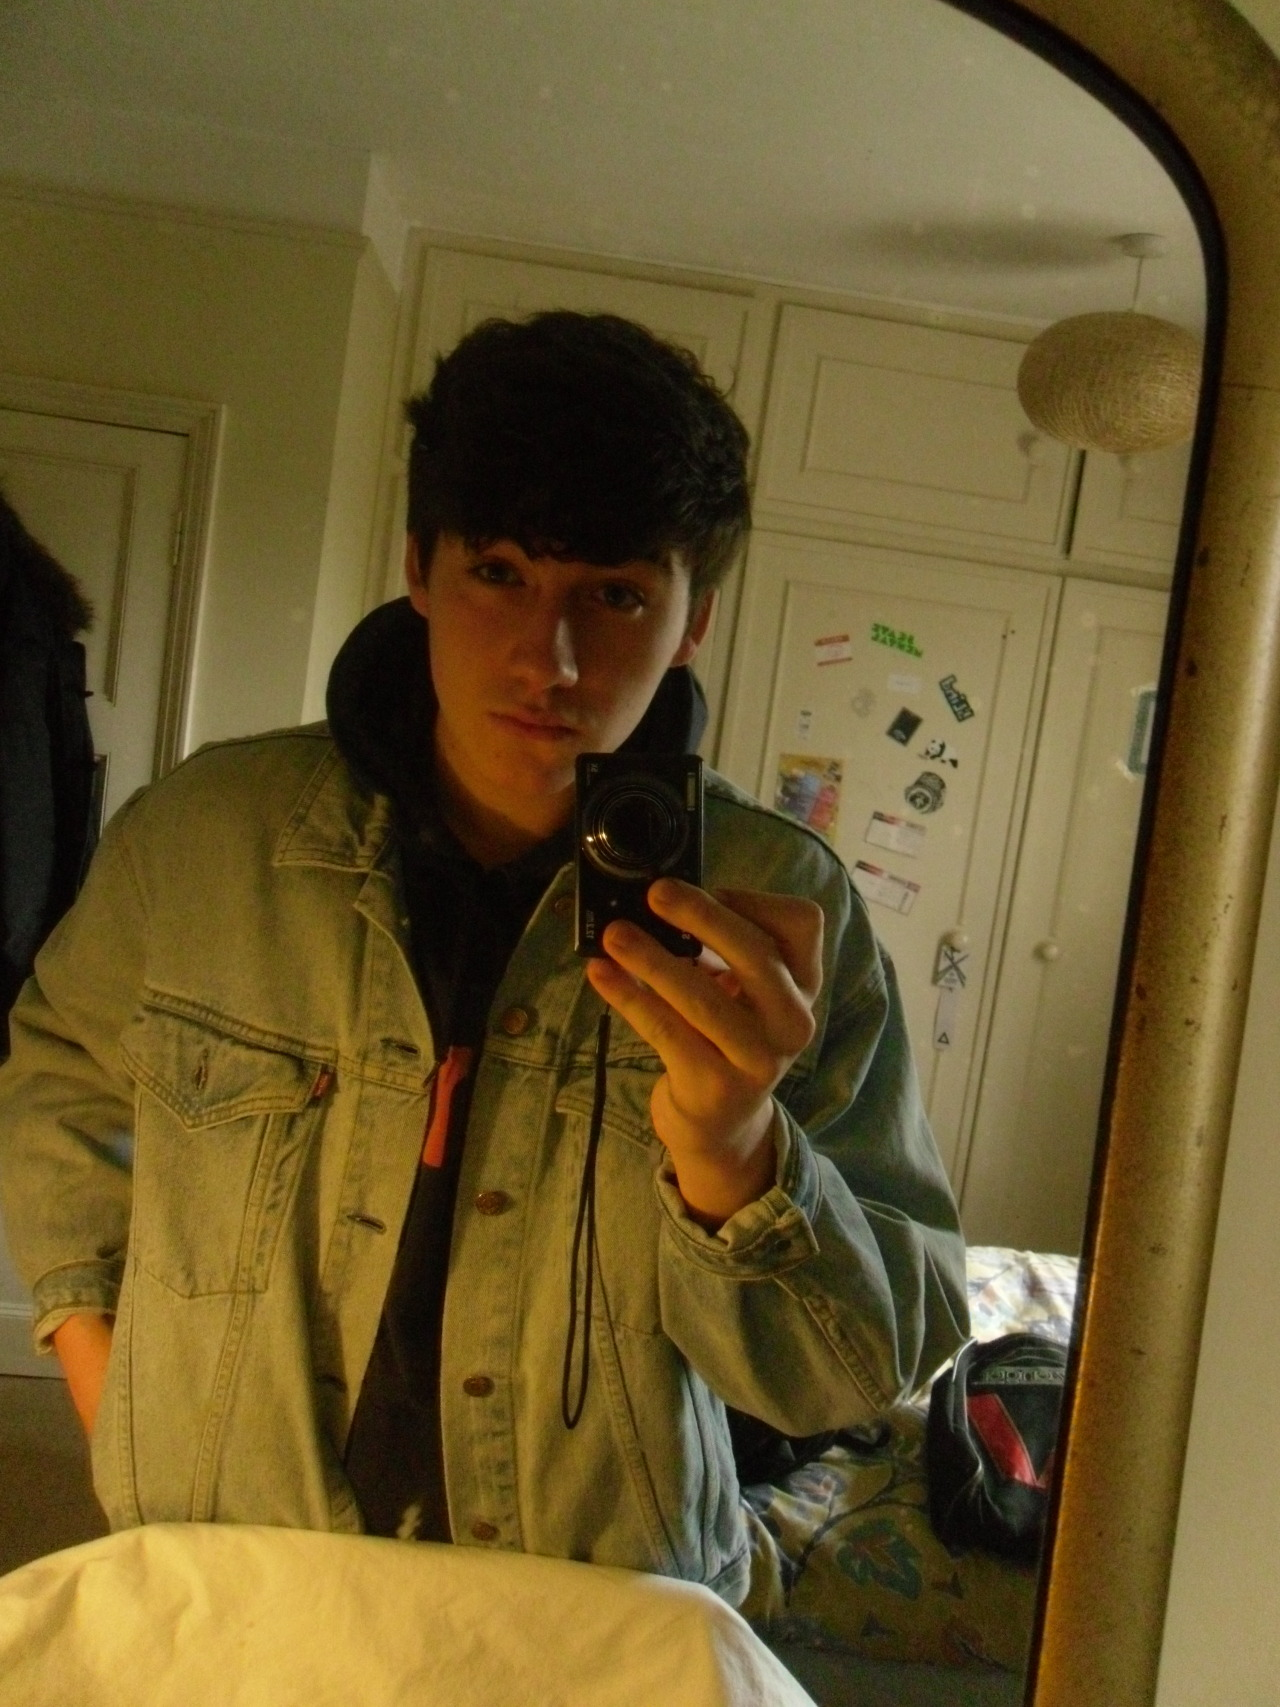 le girlfriend got me a denim jacket n i haven't really uploaded a selfie in forever lol